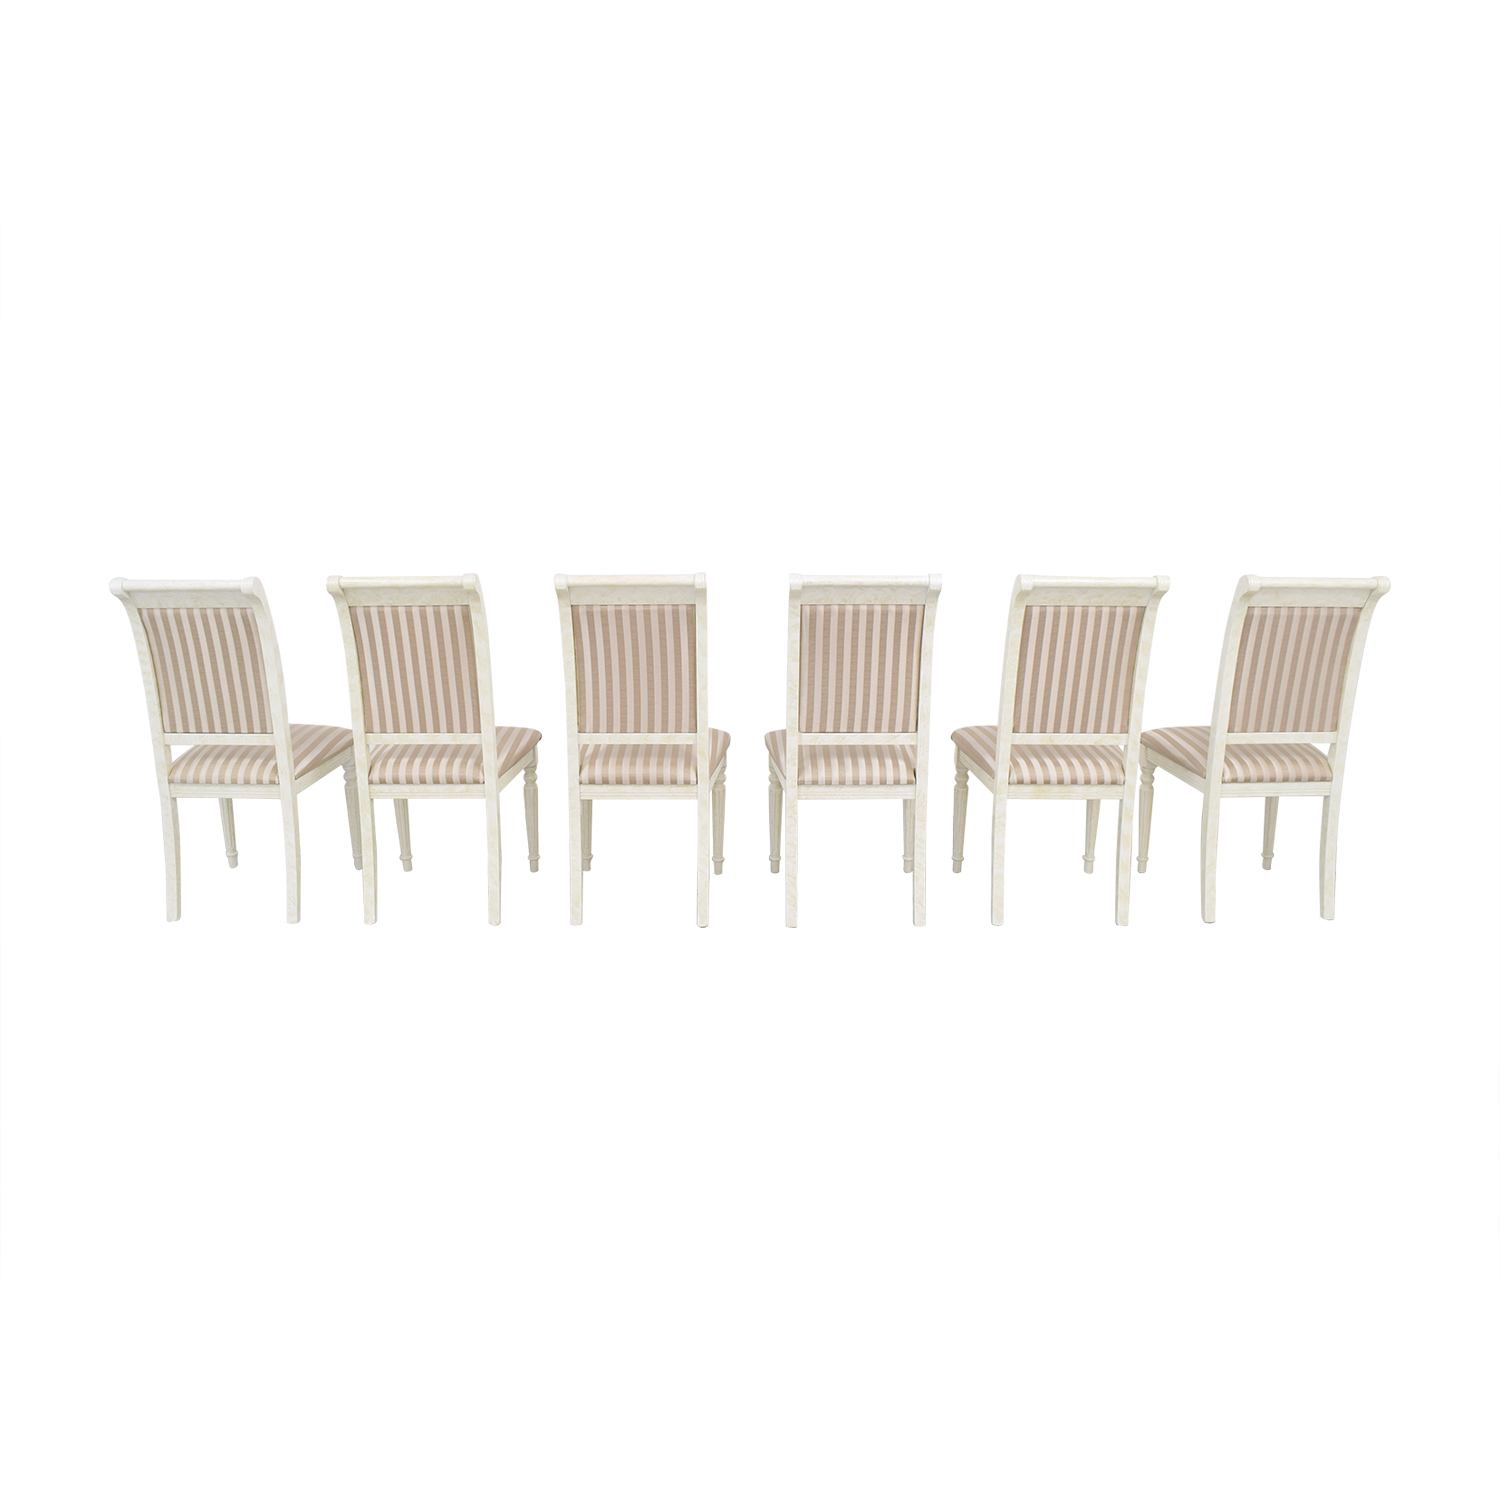 Arredoclassic Arredoclassic Italy Dining Chairs Chairs